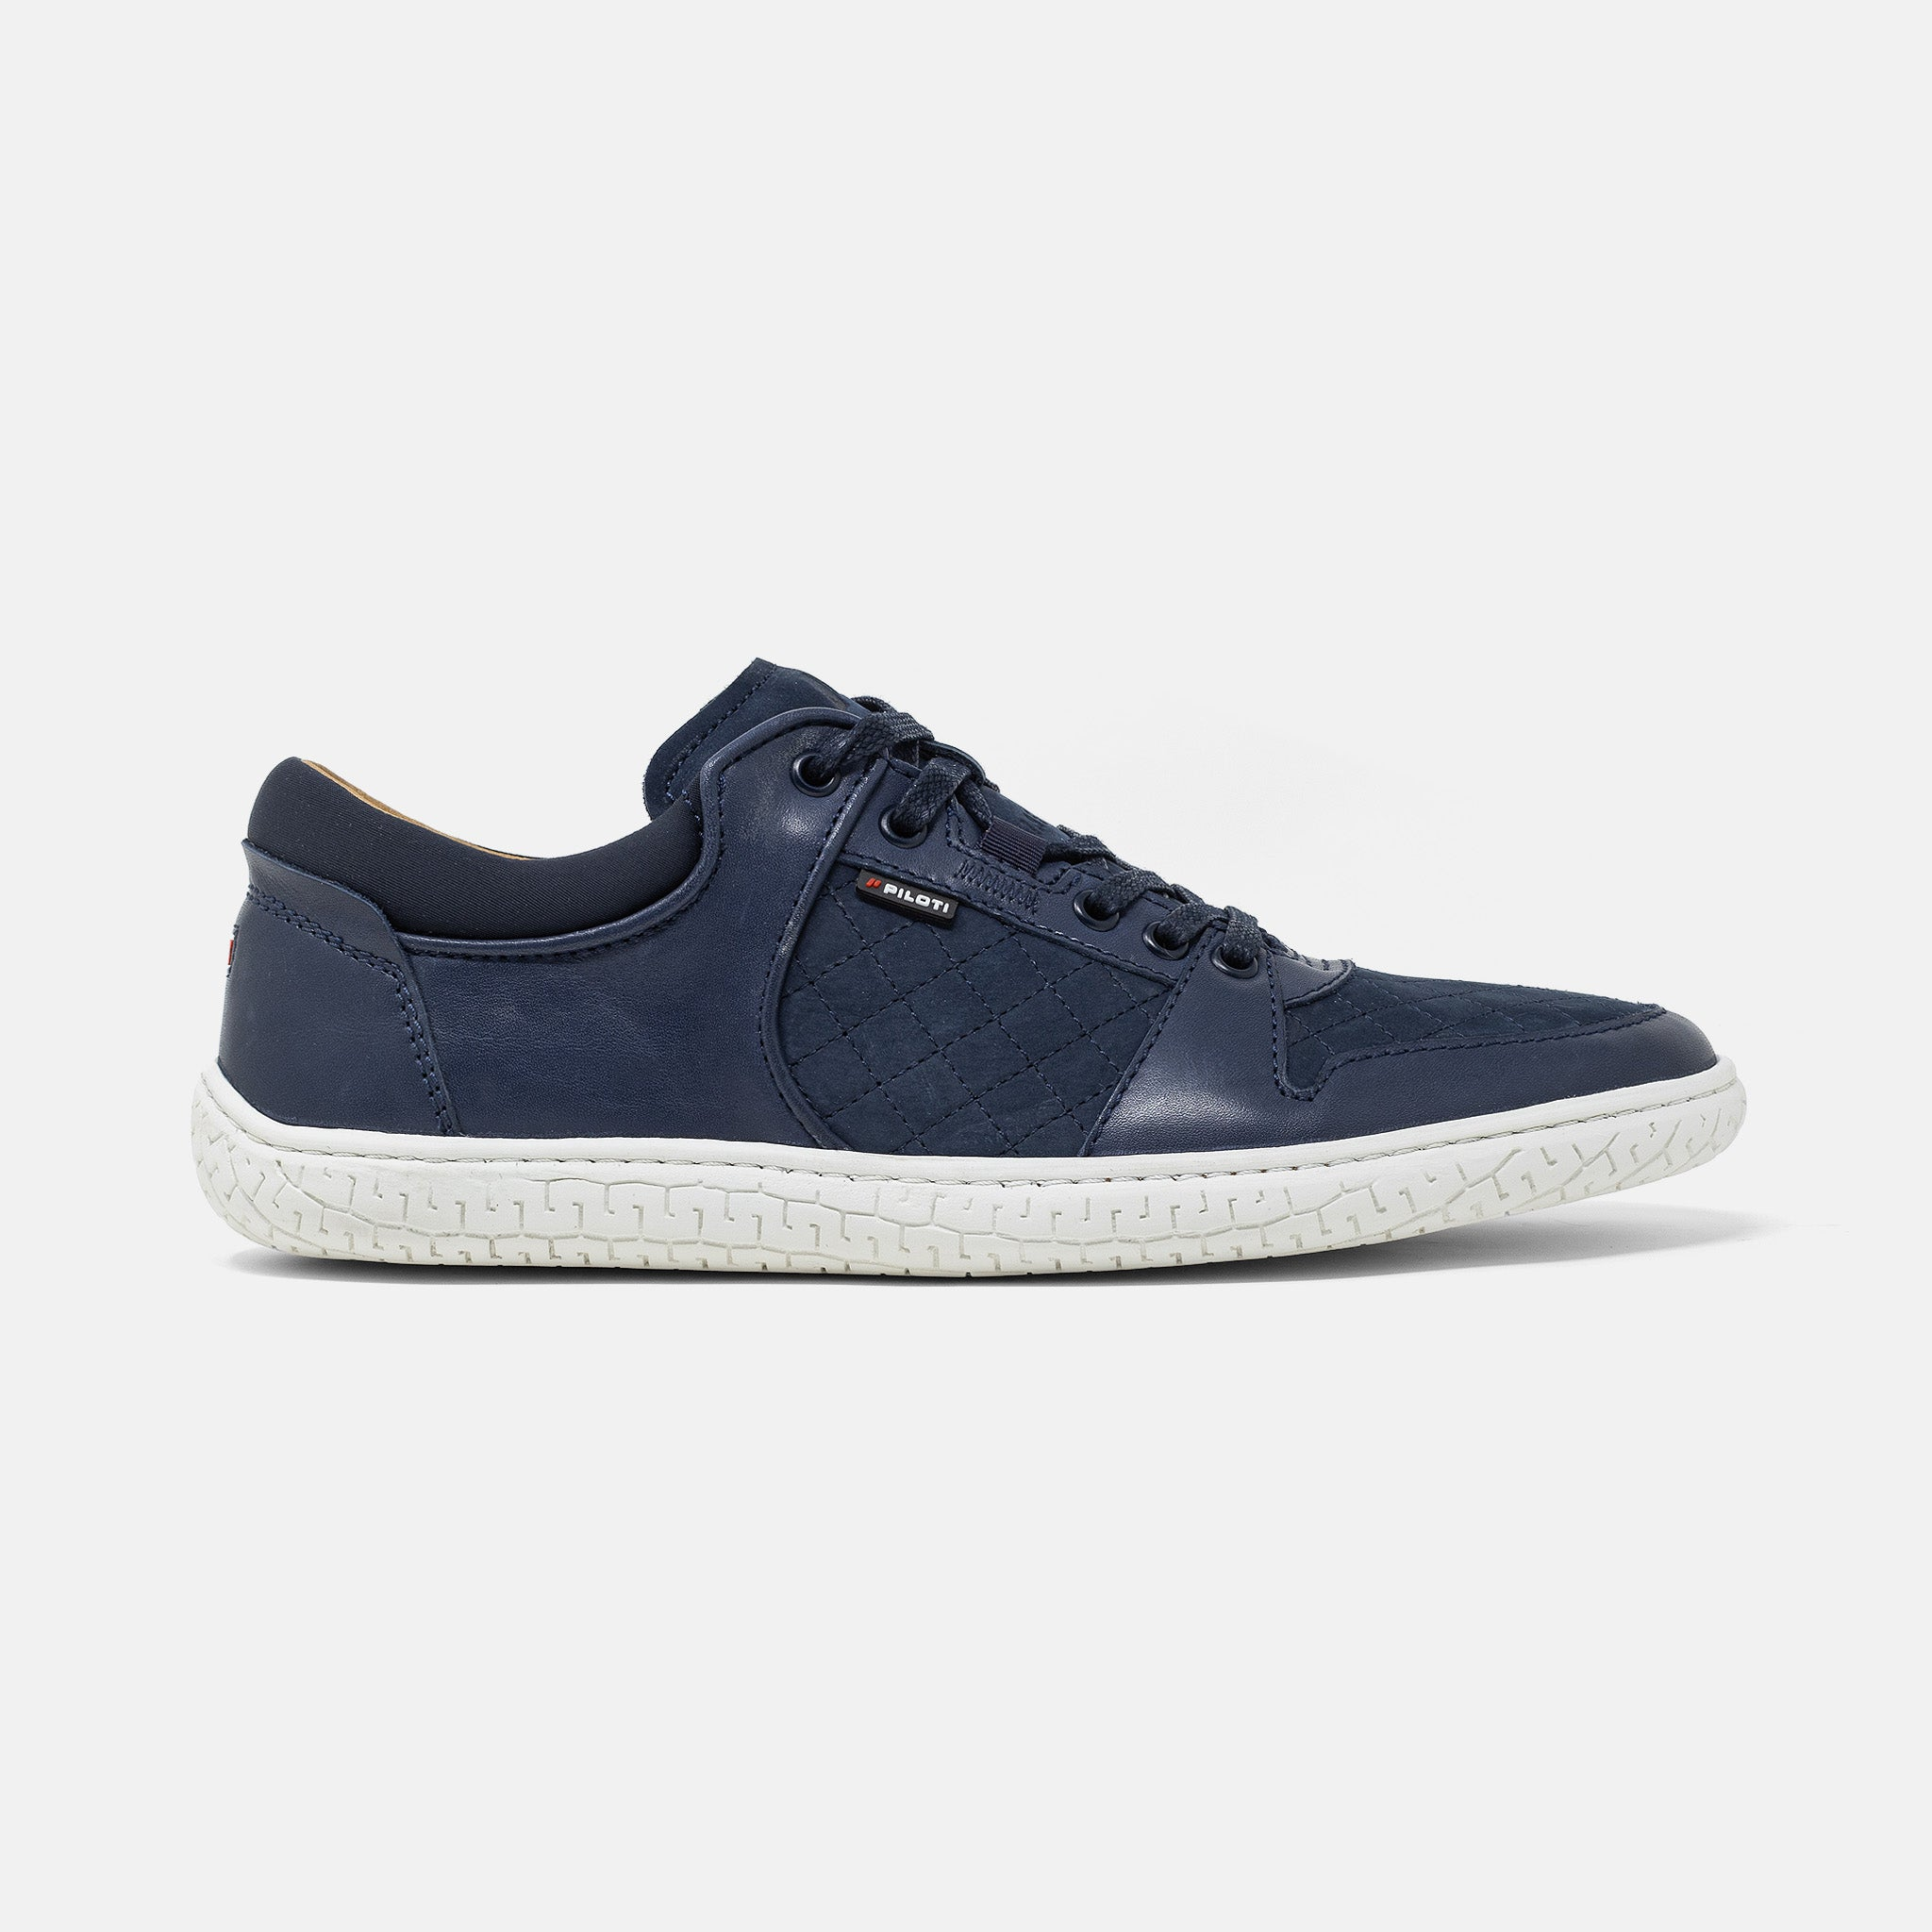 Men's navy leather and suede Momentum sneaker with white cup sole, lateral view